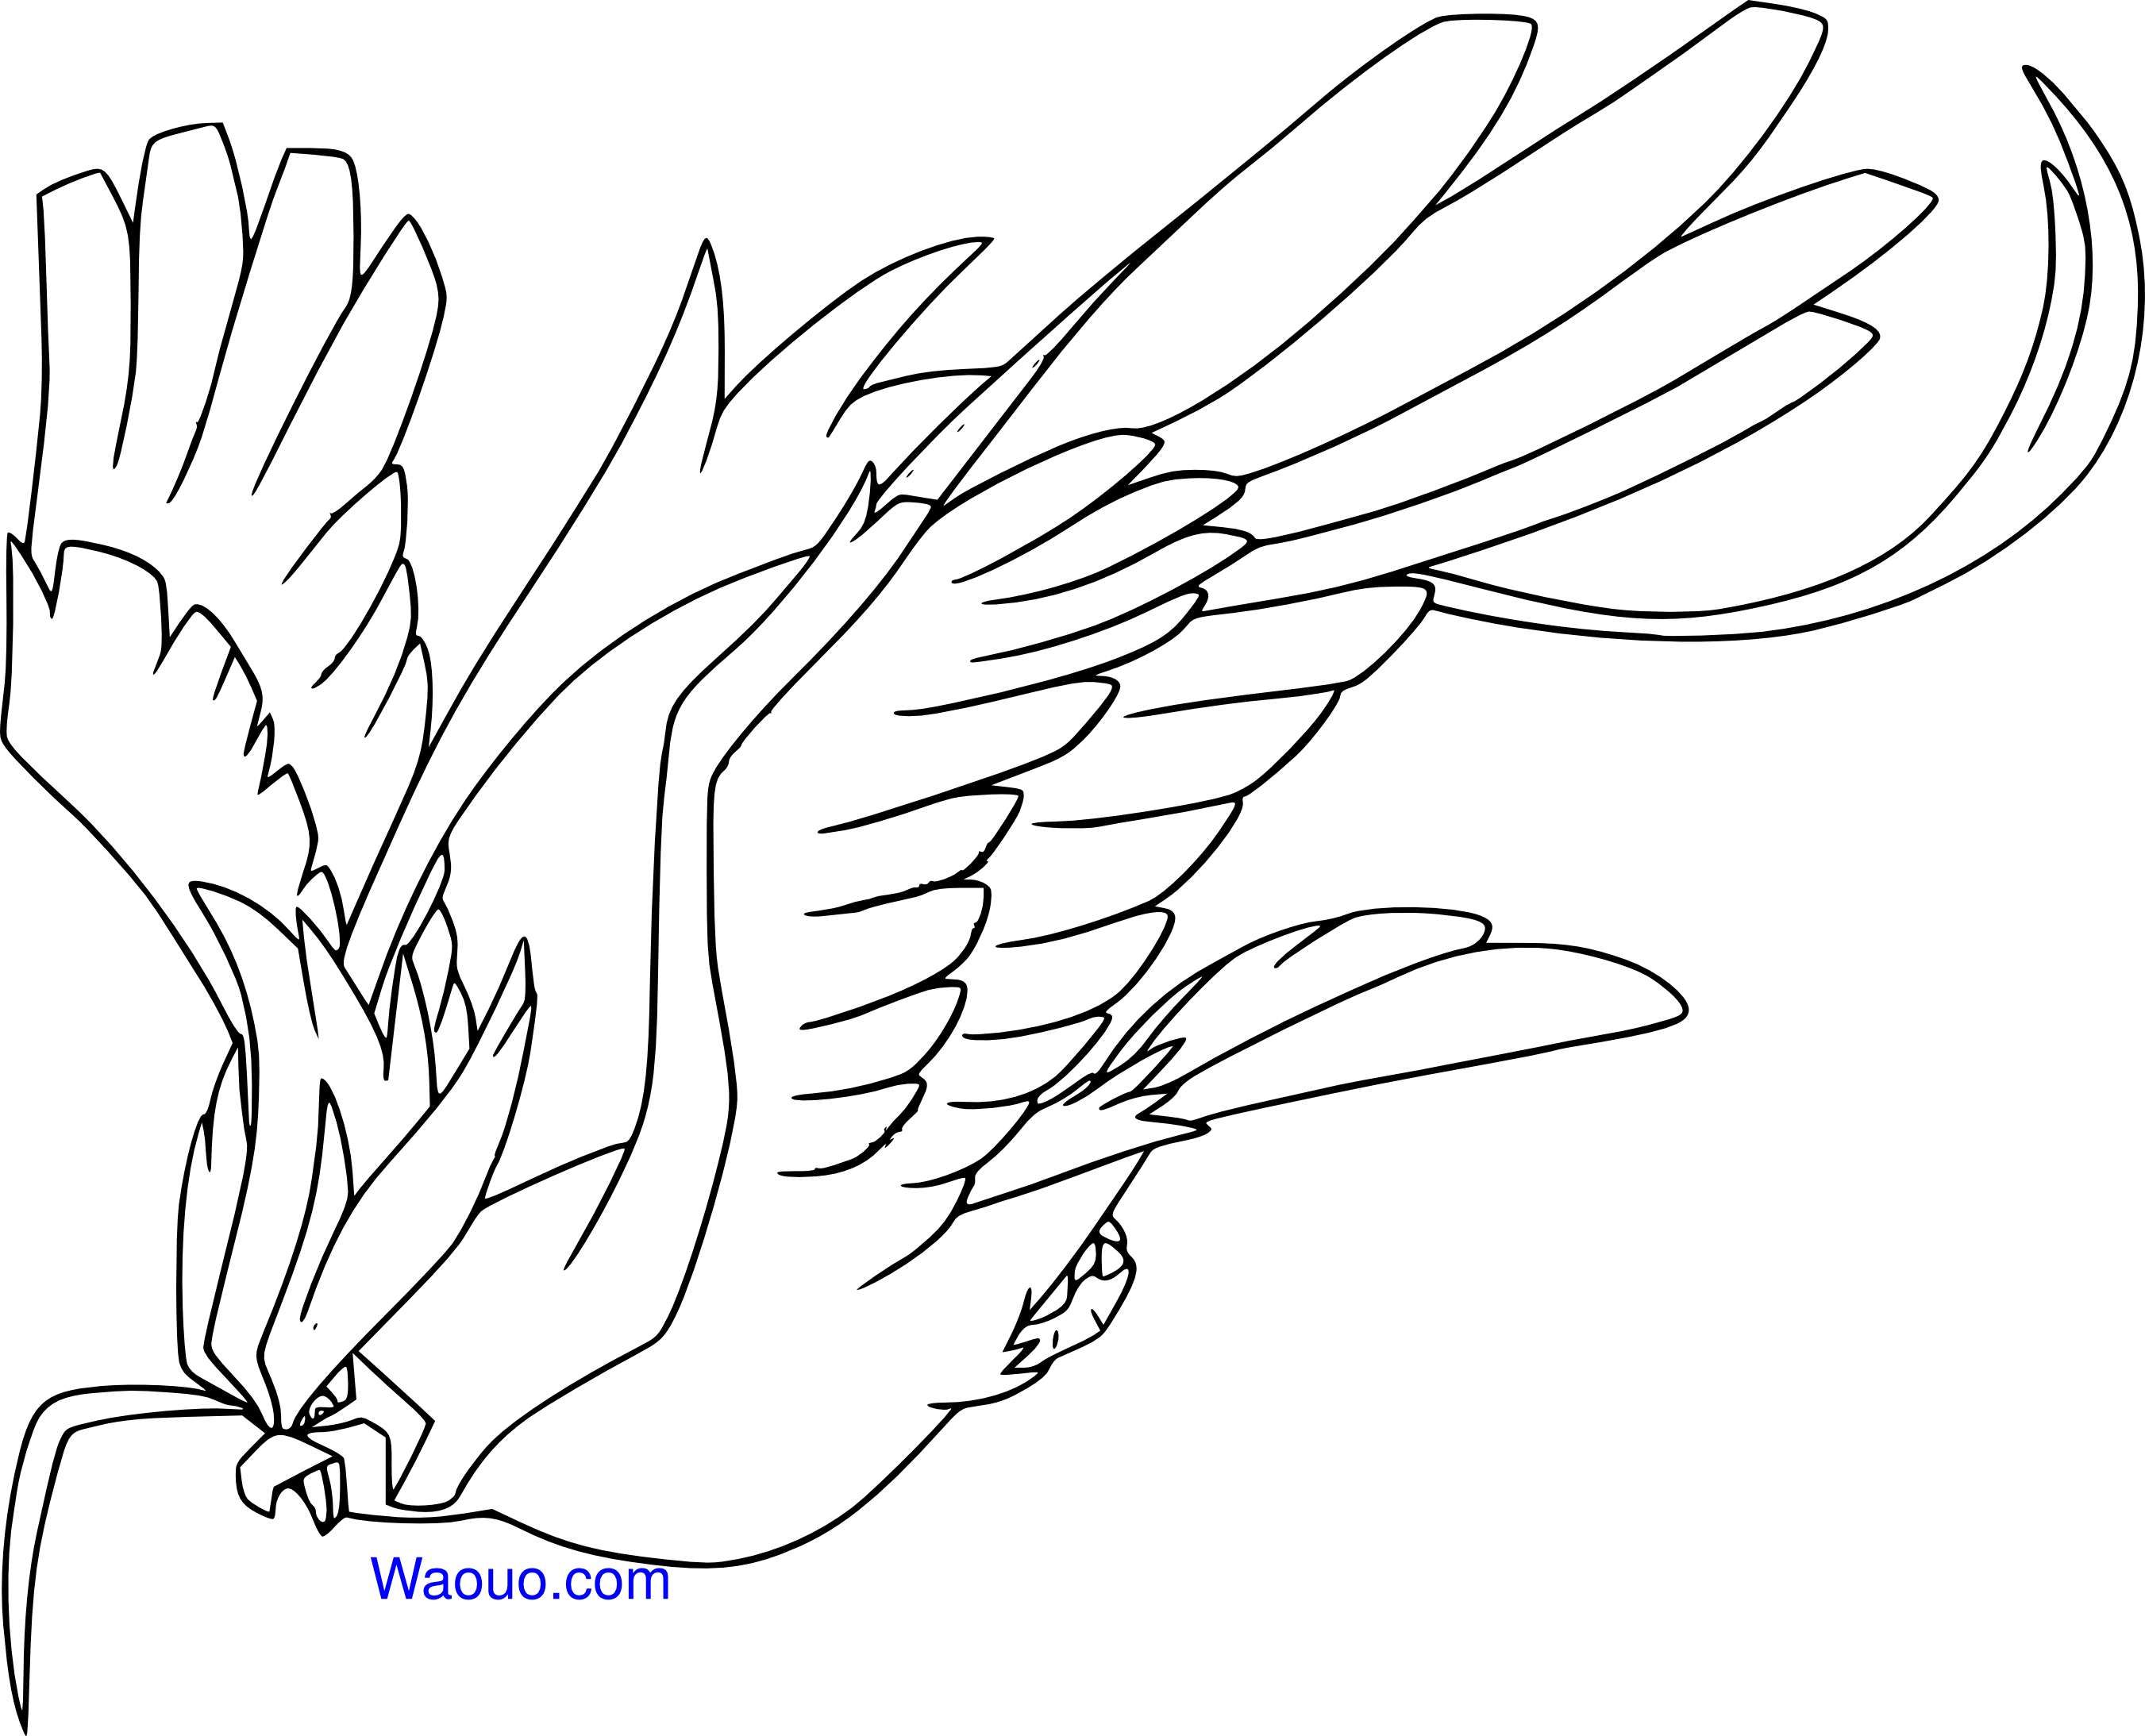 Coloriage Pokemon Famille Evoli.39 Dessins De Coloriage Pokemon Mega Evolution A Imprimer